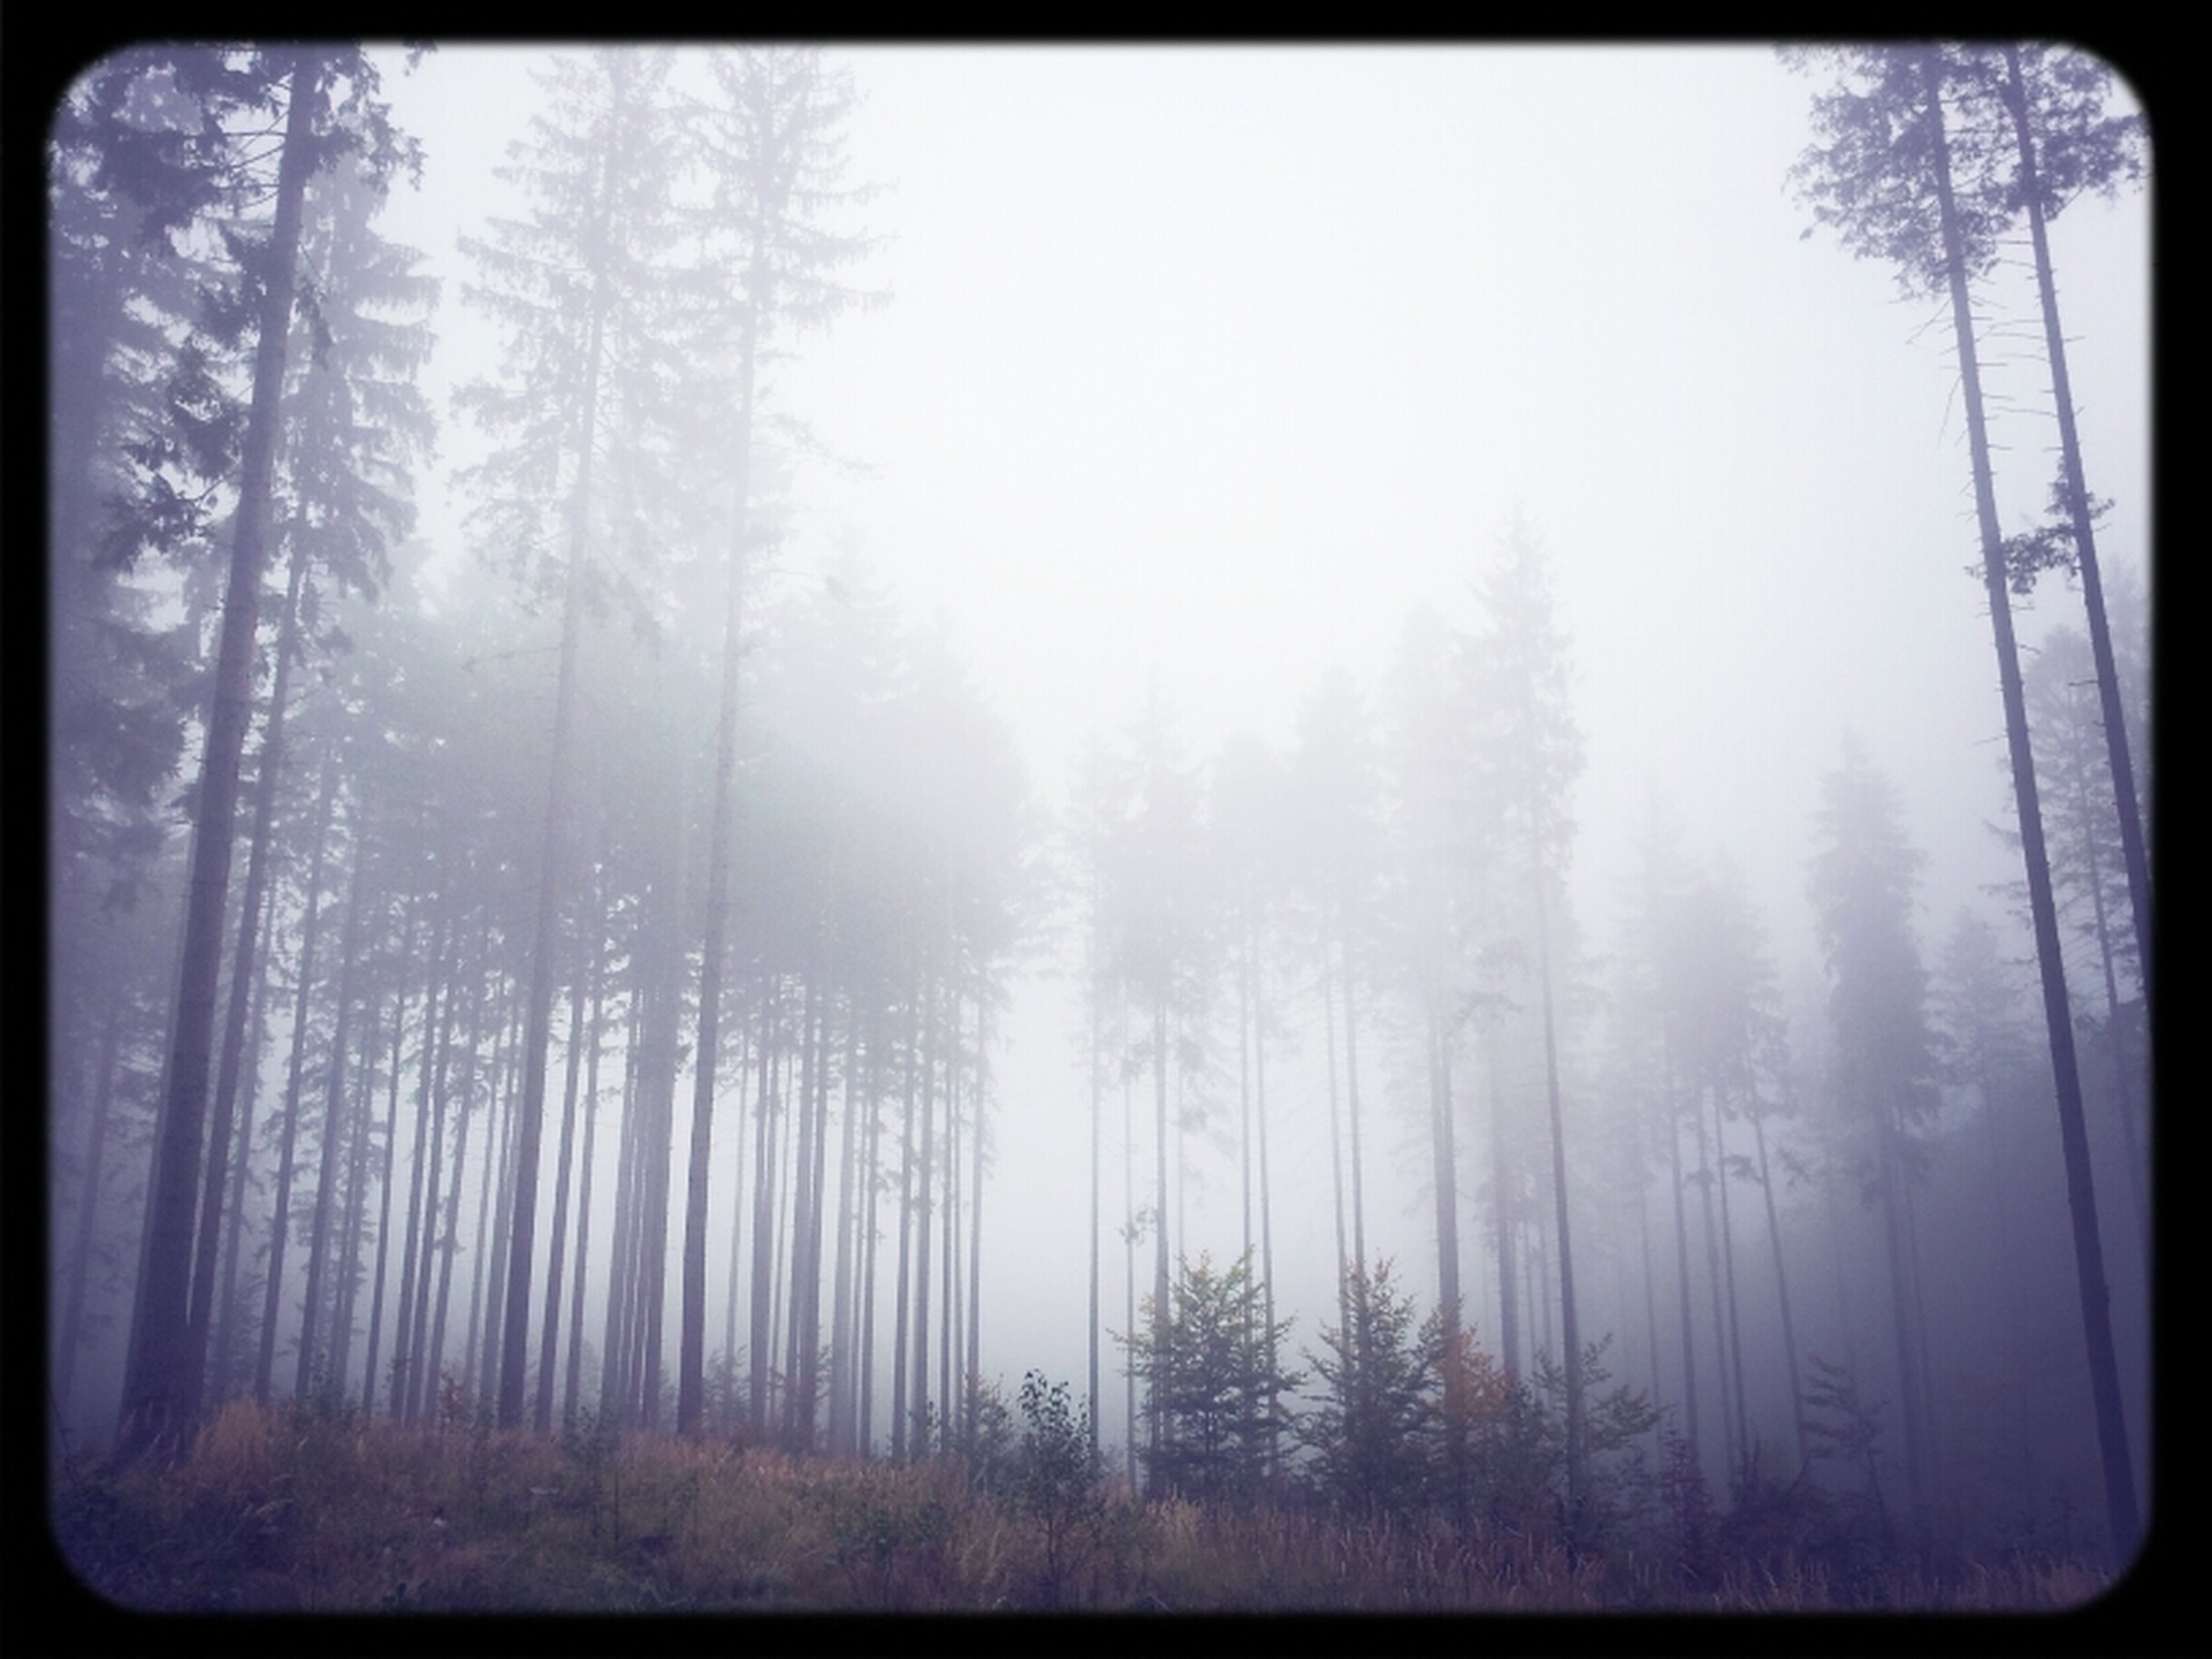 tree, forest, tranquility, transfer print, woodland, tree trunk, tranquil scene, growth, nature, auto post production filter, beauty in nature, scenics, fog, branch, non-urban scene, day, outdoors, landscape, idyllic, foggy